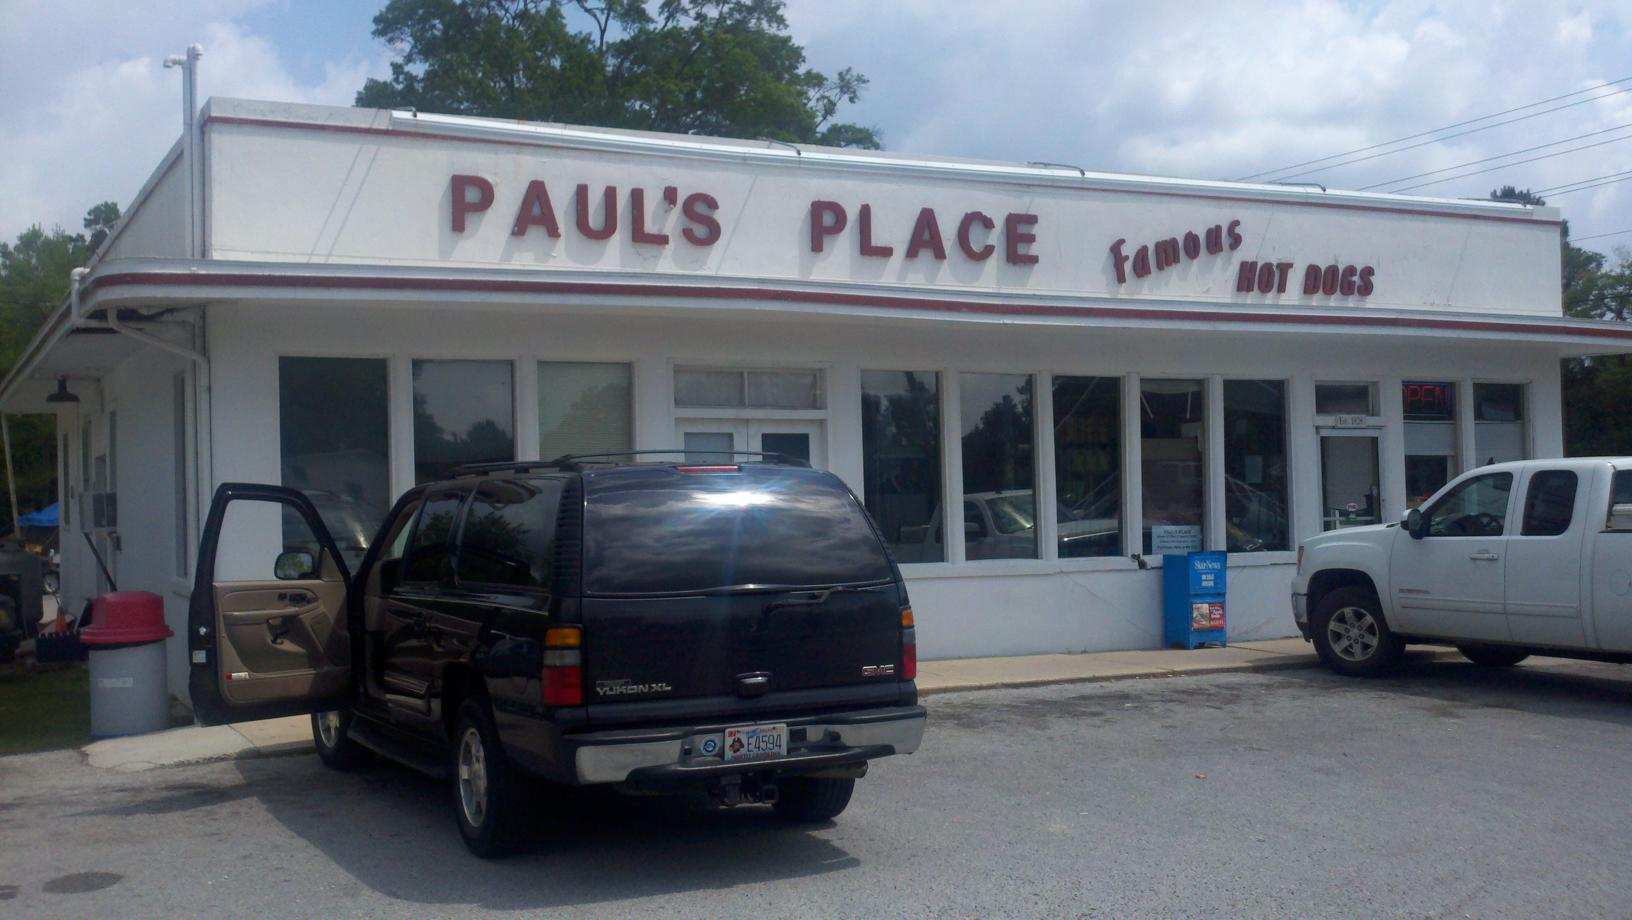 Review paul 39 s place rocky point eat it north carolina for Fast food places open on easter sunday